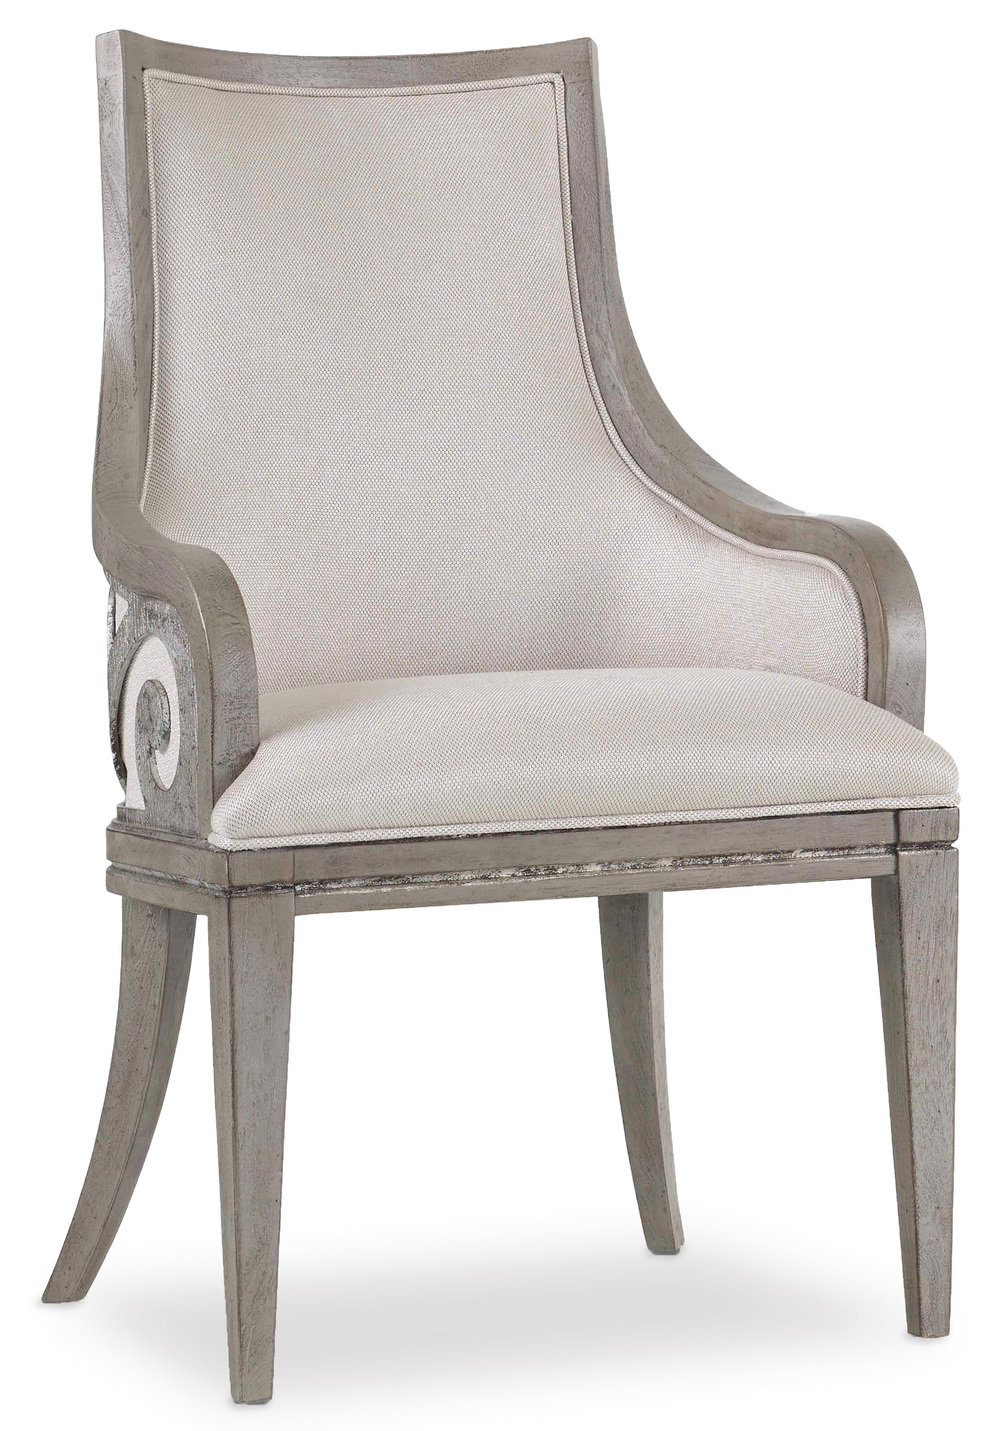 HOOKER FURNITURE CO - Sanctuary Upholstered Arm Chair